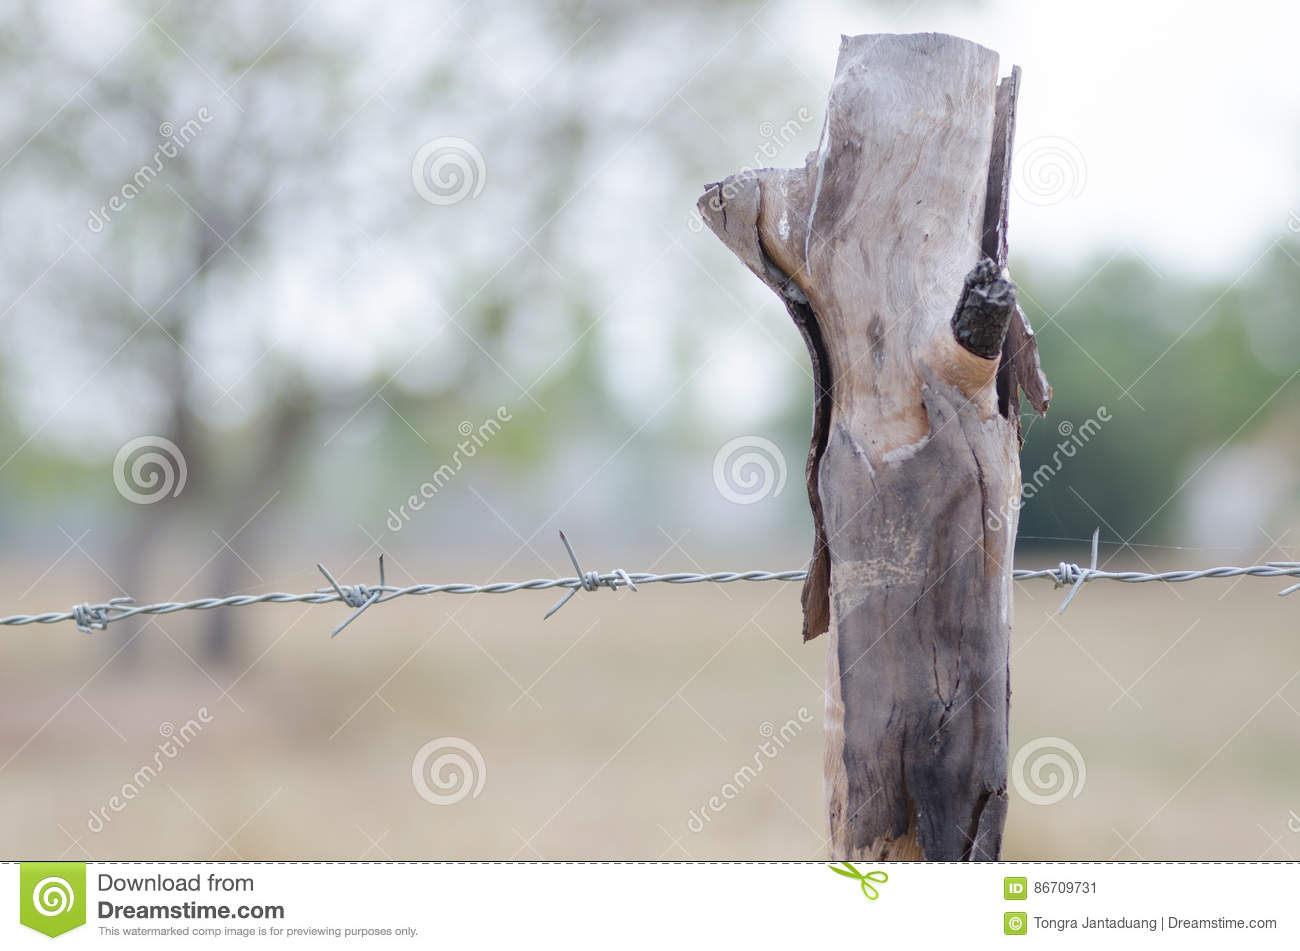 Stretching Barbed Wire Fence | Stretched Barbed Fence With Trees Around The Farm Saturday Morni